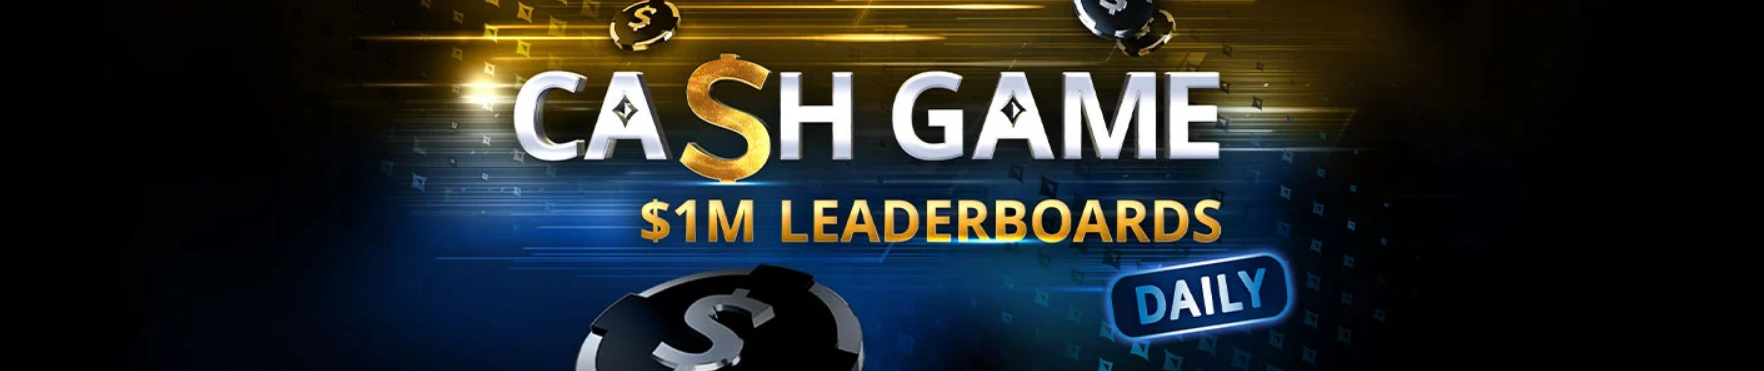 Cash Game Leaderboards $36K every day partypoker